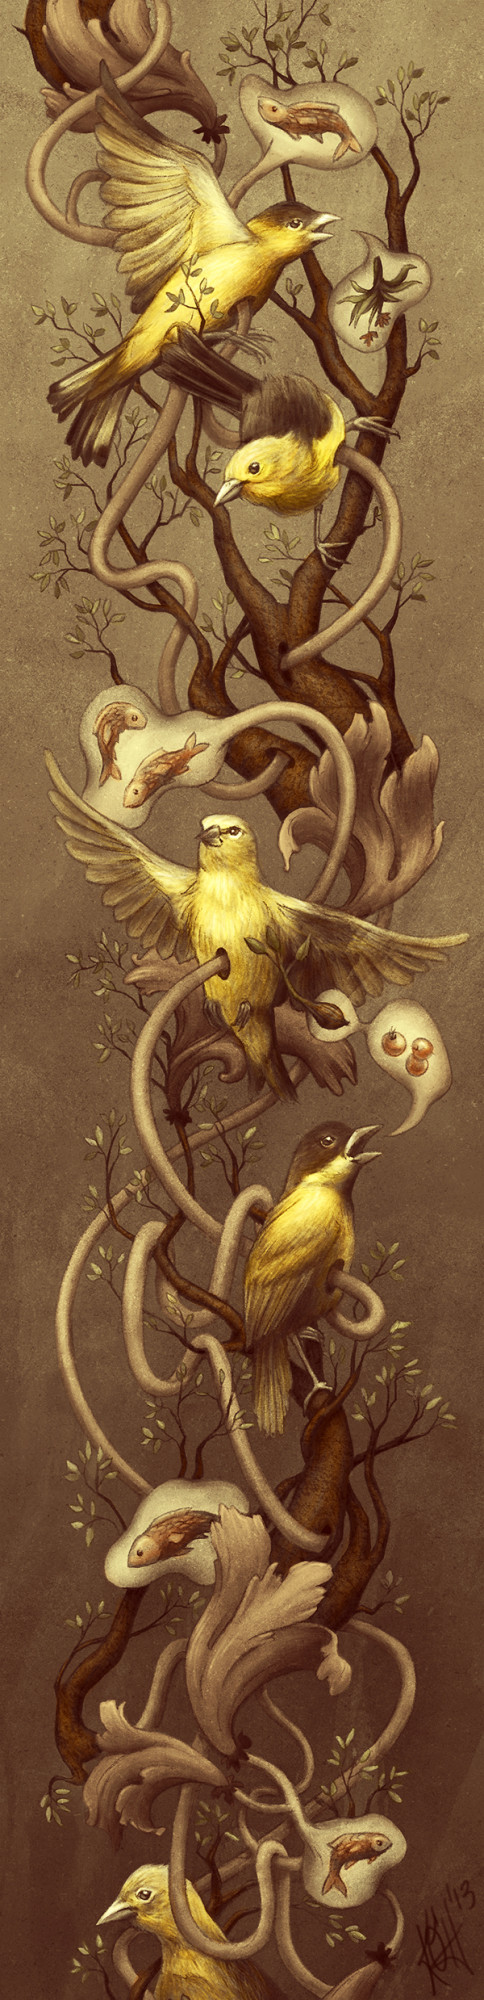 GOLDFINCH - Kate O'Hara - biological Illustration